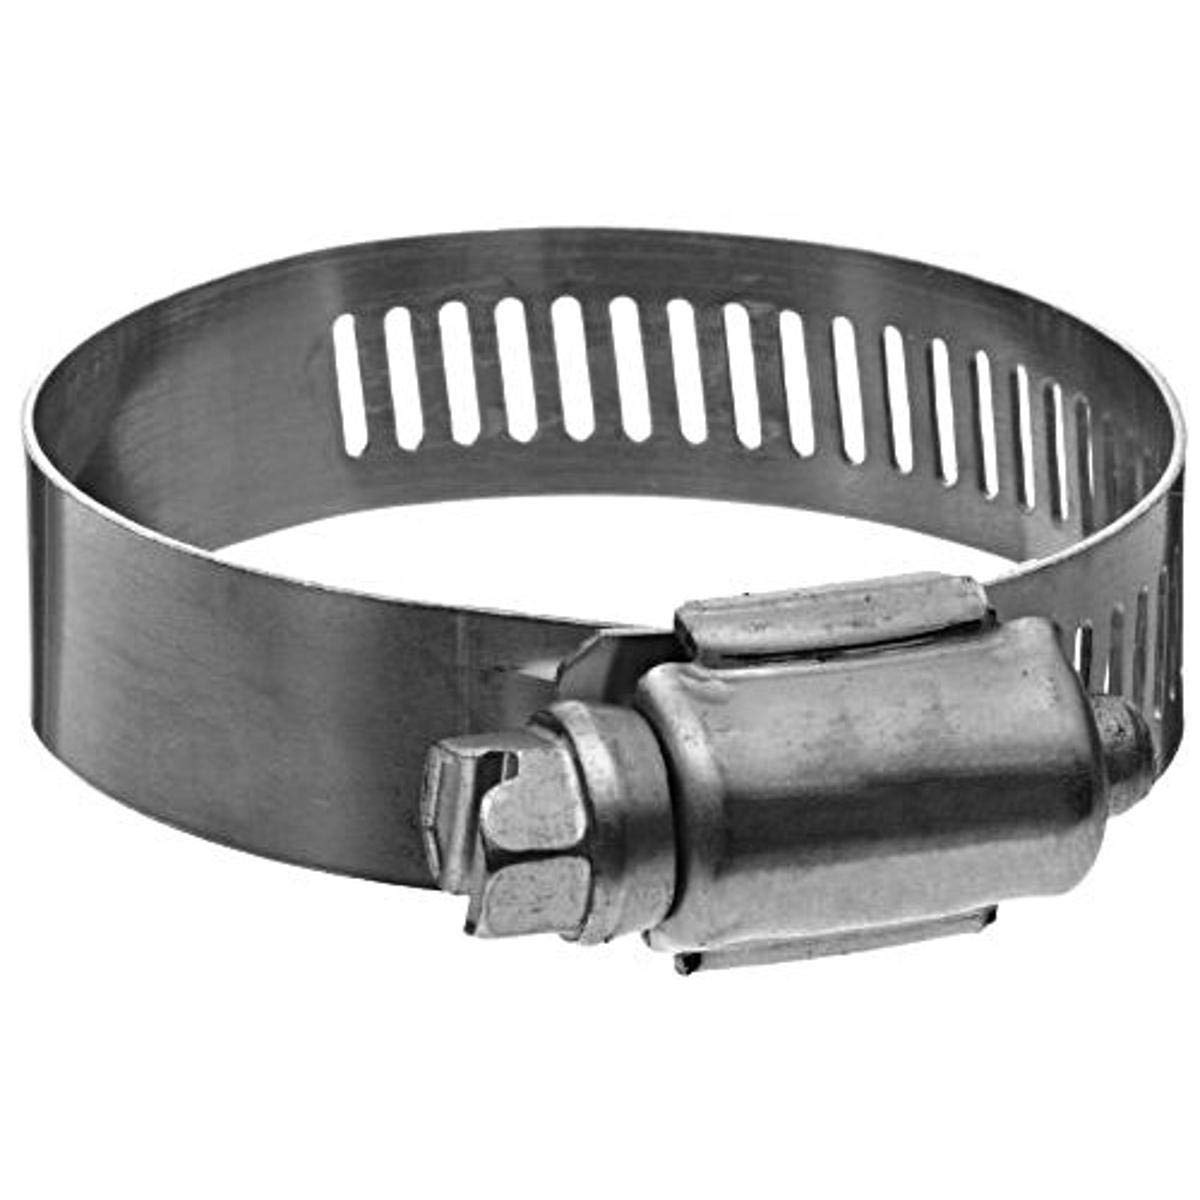 Sale SALE% OFF Precision Limited price Brand MS24SS All Stainless Military Hose Gear Cla Worm